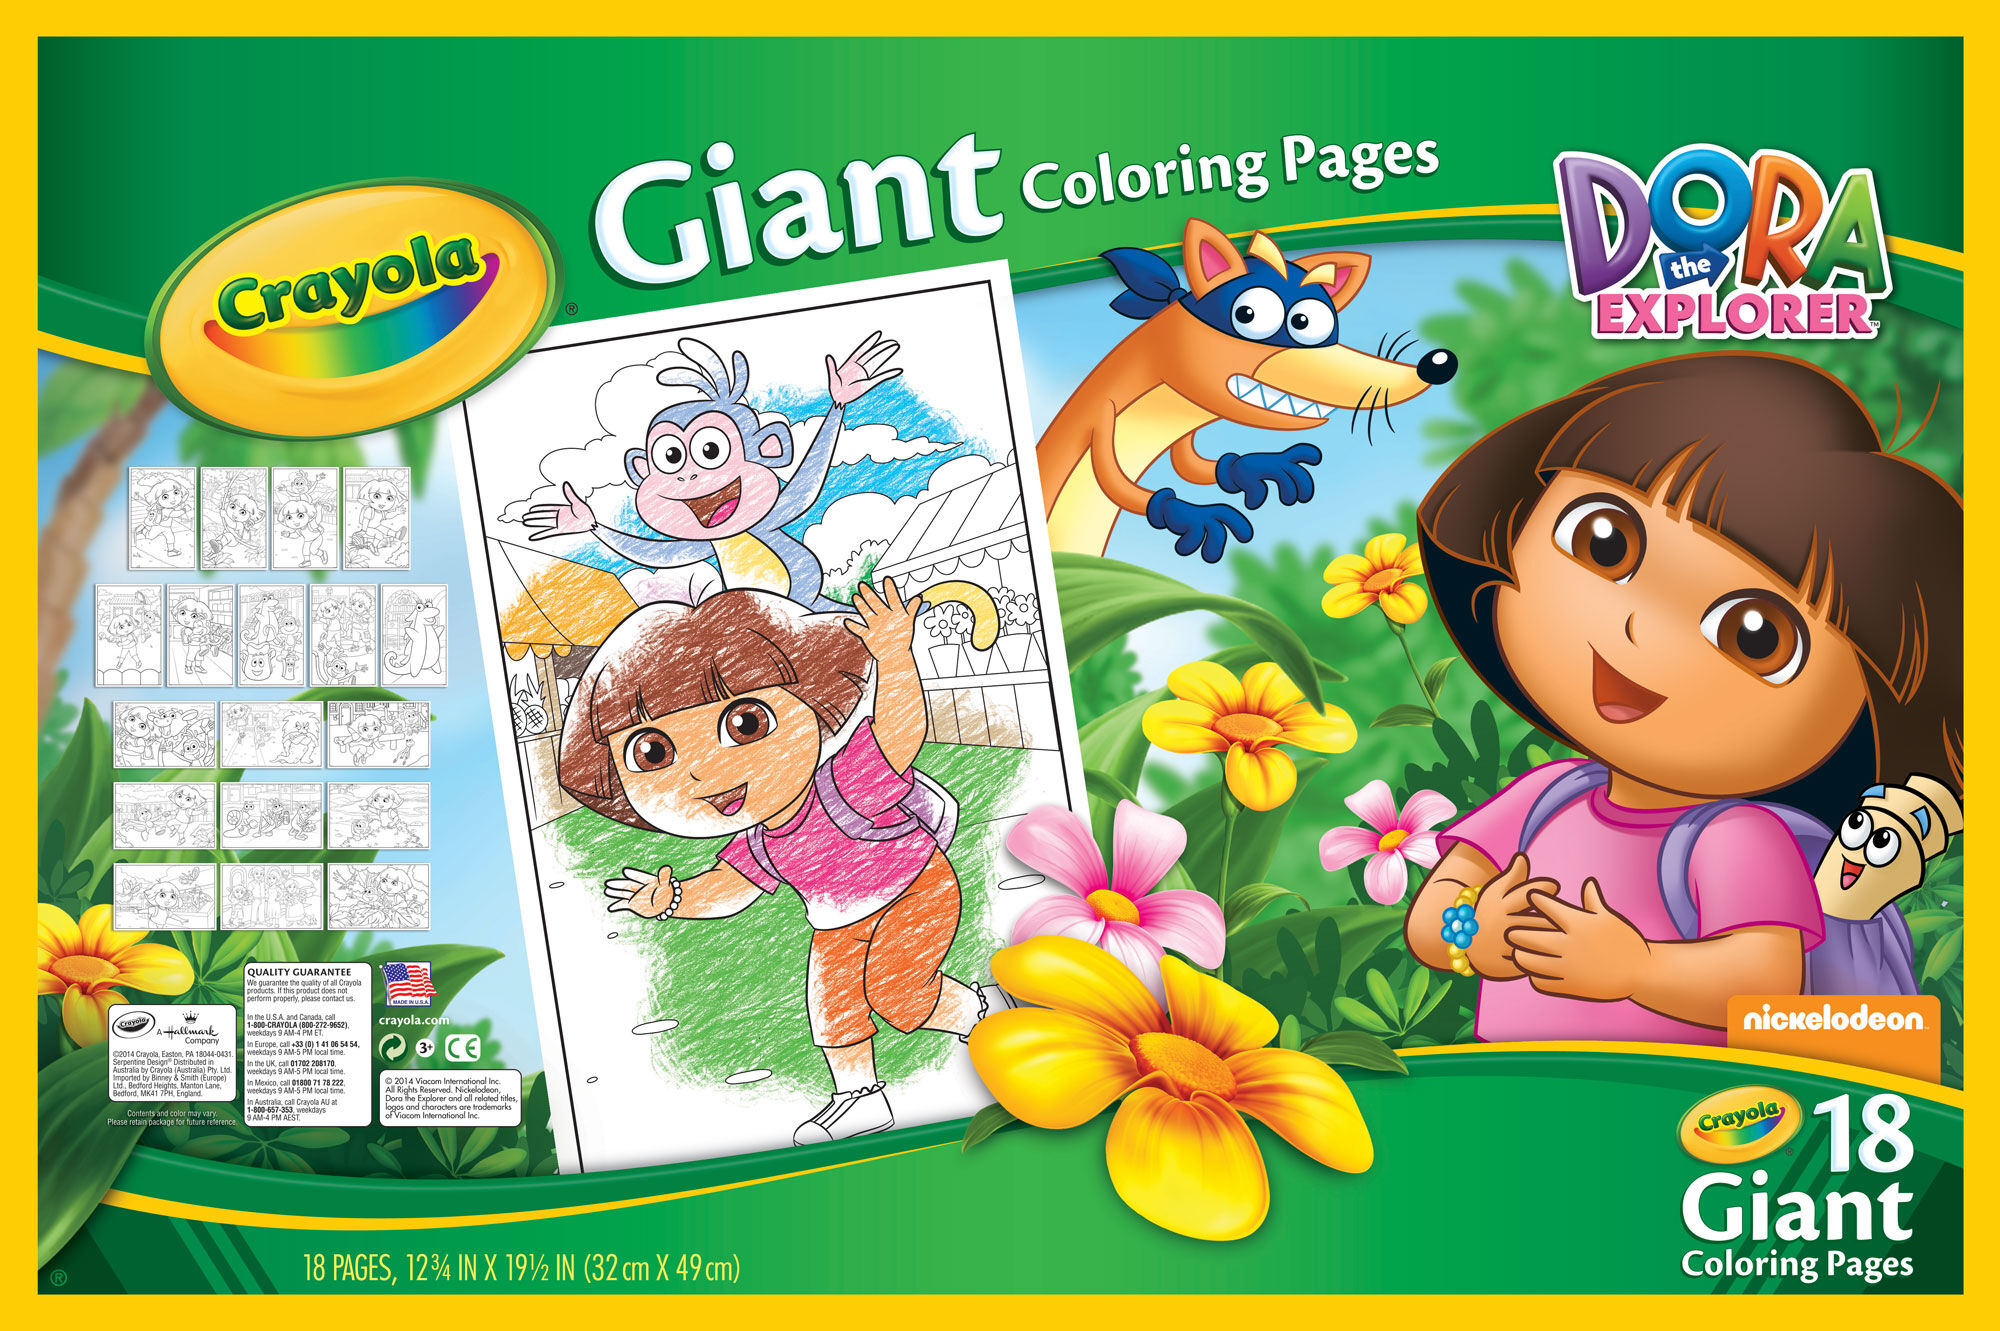 Giant Coloring Pages Dora the Explorer Crayola